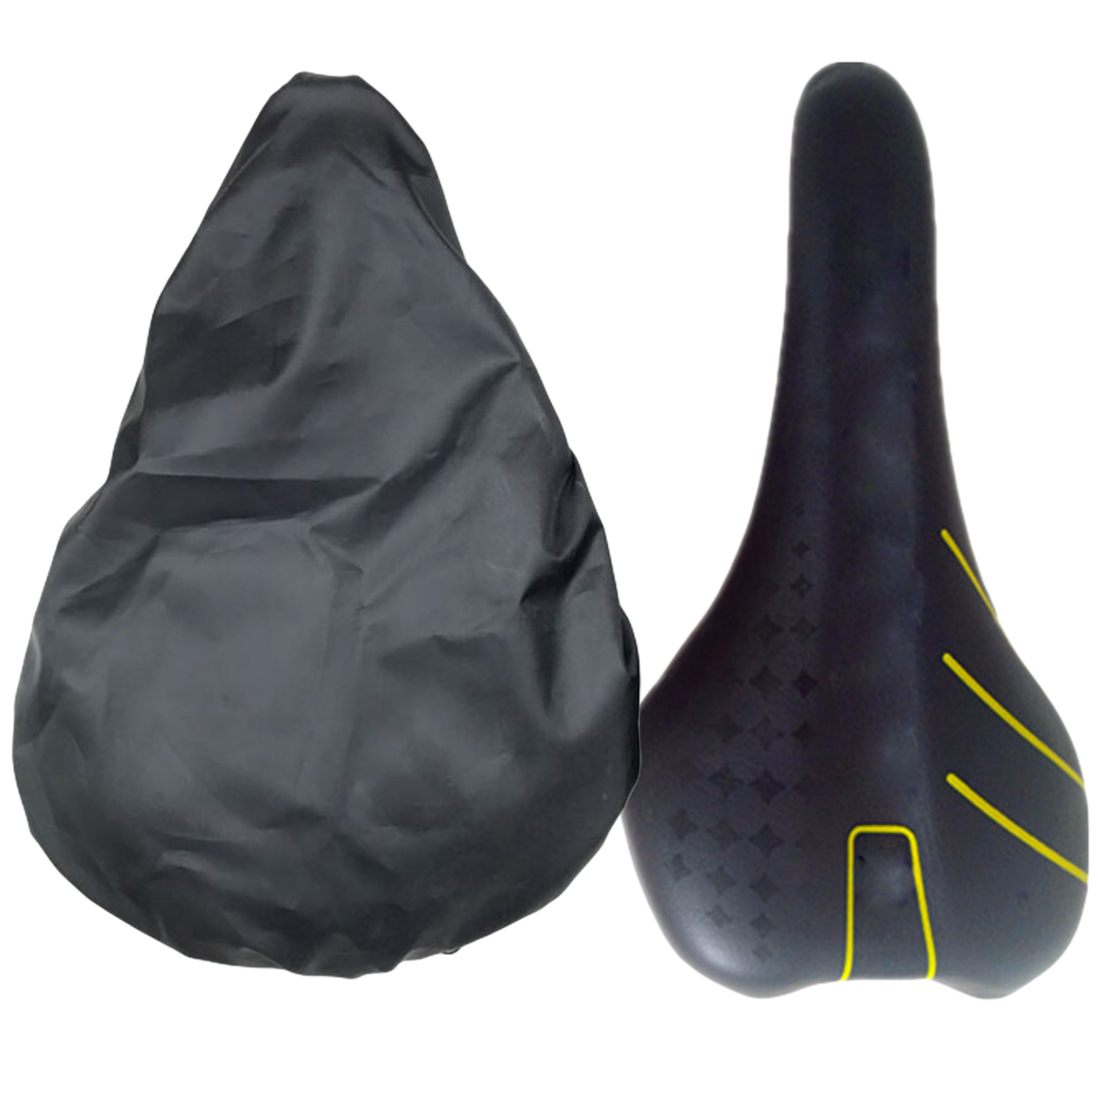 Waterproof Outdoor Cycling Bike Bicycle Seat Rain Cover Elastic Dust and Rain Resistant UV Protector Bike Accessories